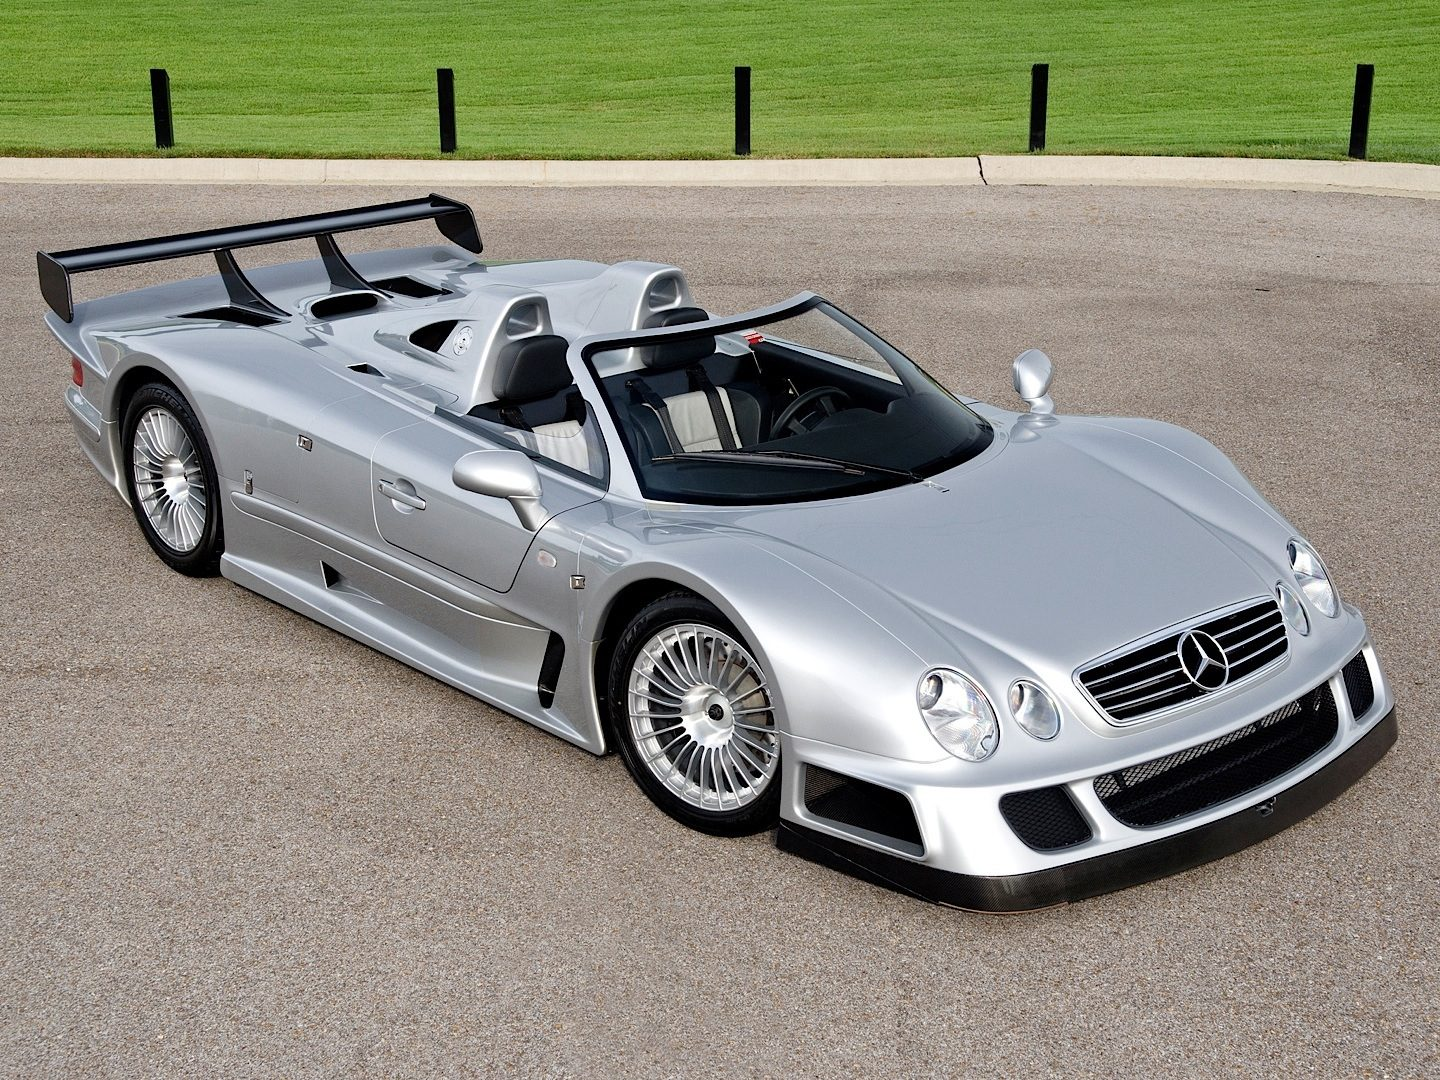 ultra-rare-clk-gtr-roadster-up-for-sale-photo-gallery_11.jpg